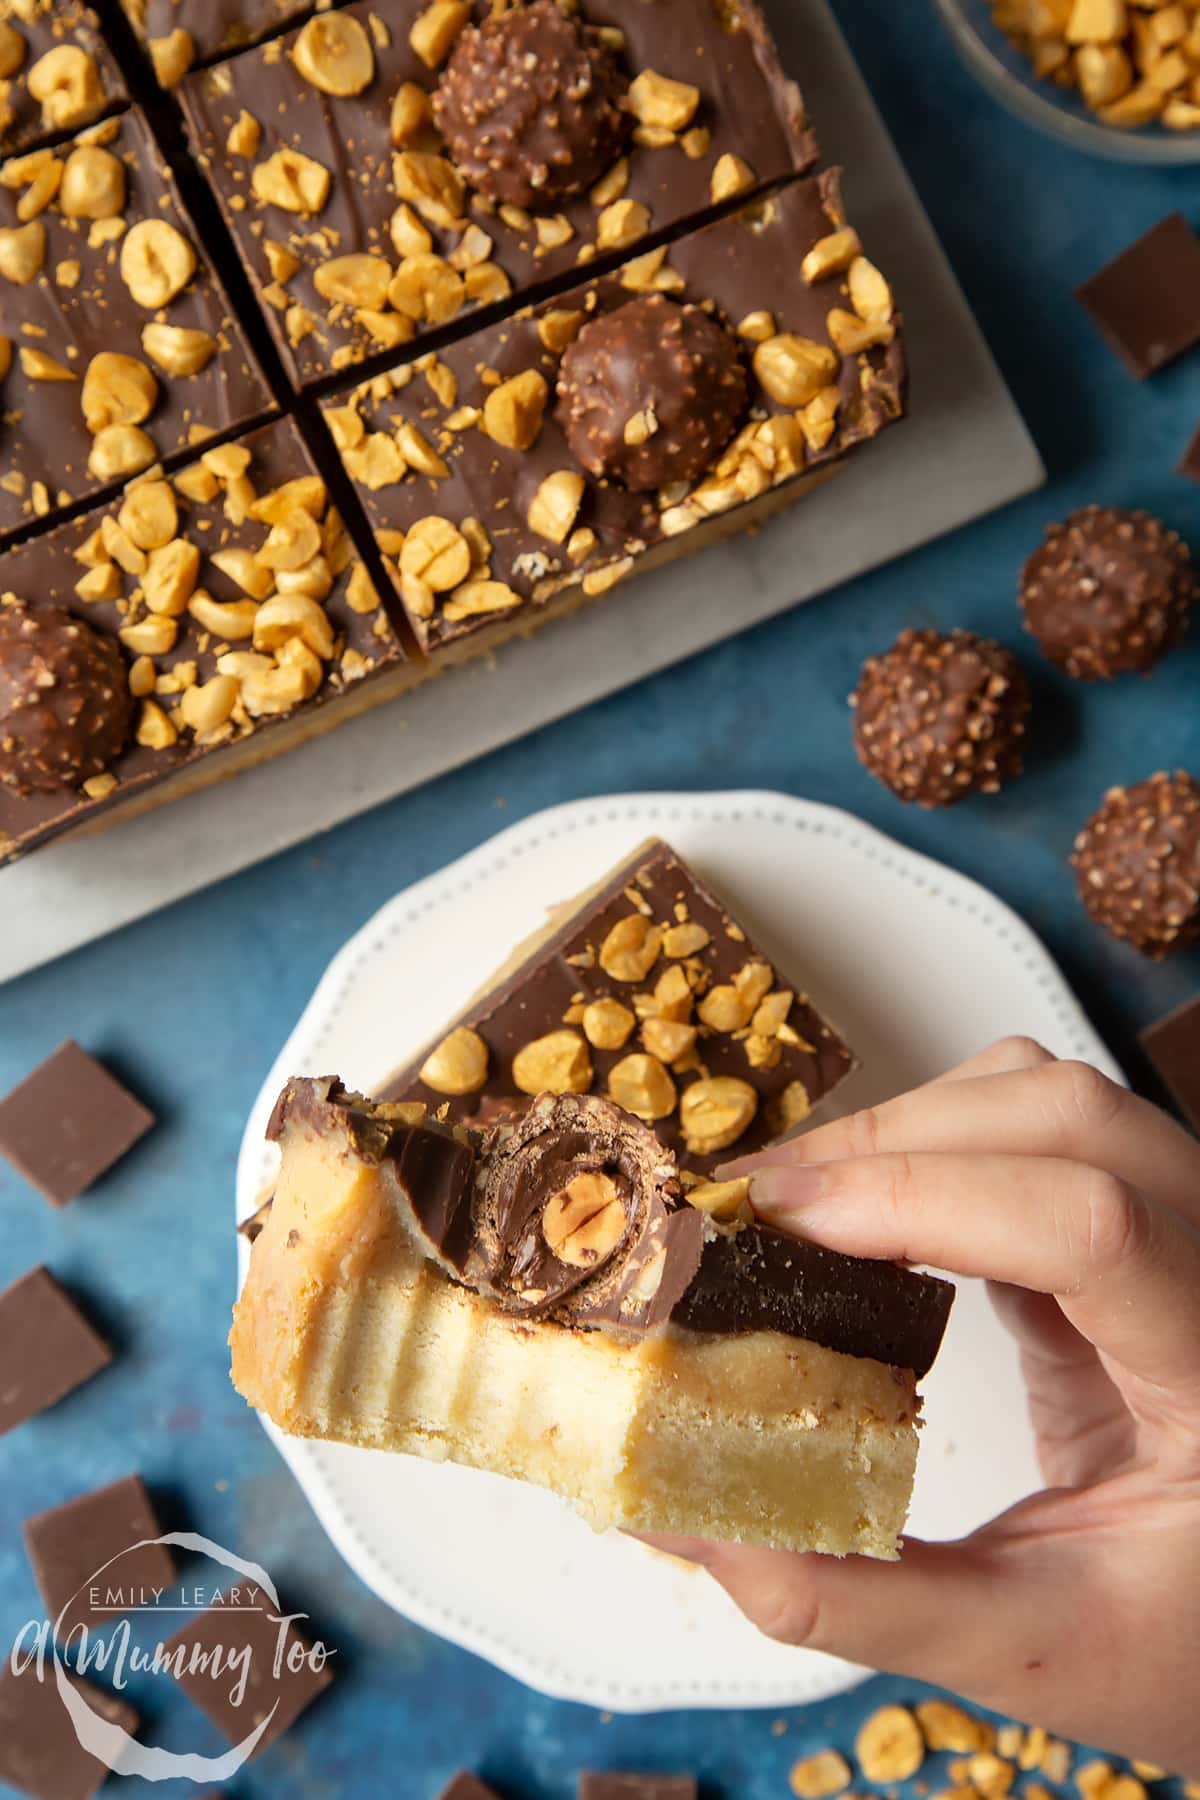 Hand holding a Ferrero Rocher slice with a bite out of it. Below is a plate and tray with more slices.